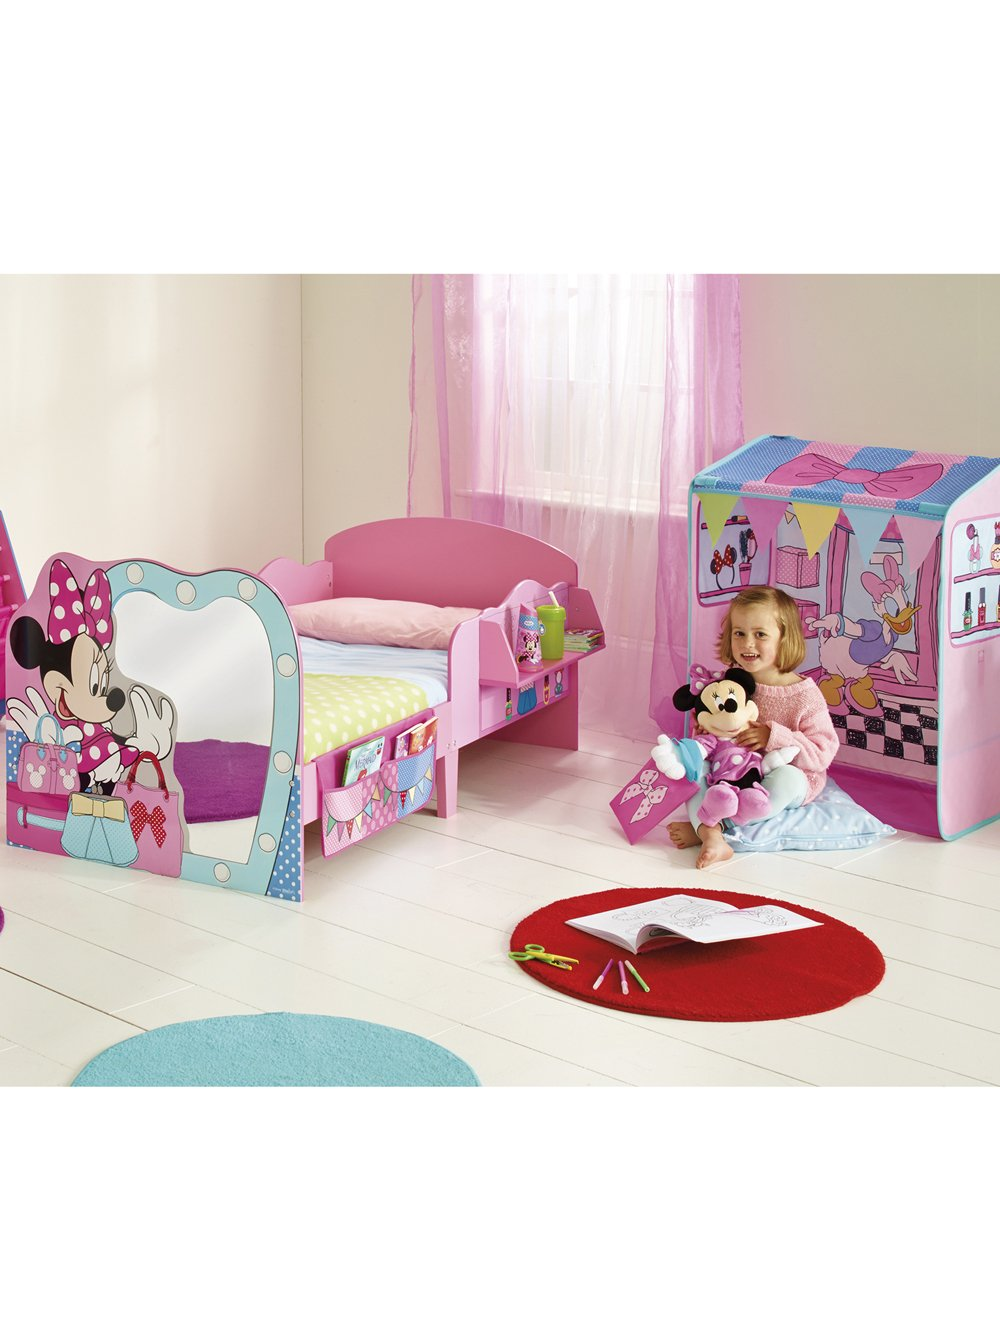 Disney Minnie Mouse Toddler Bed And Canopy By HelloHome Amazoncouk Kitchen Home